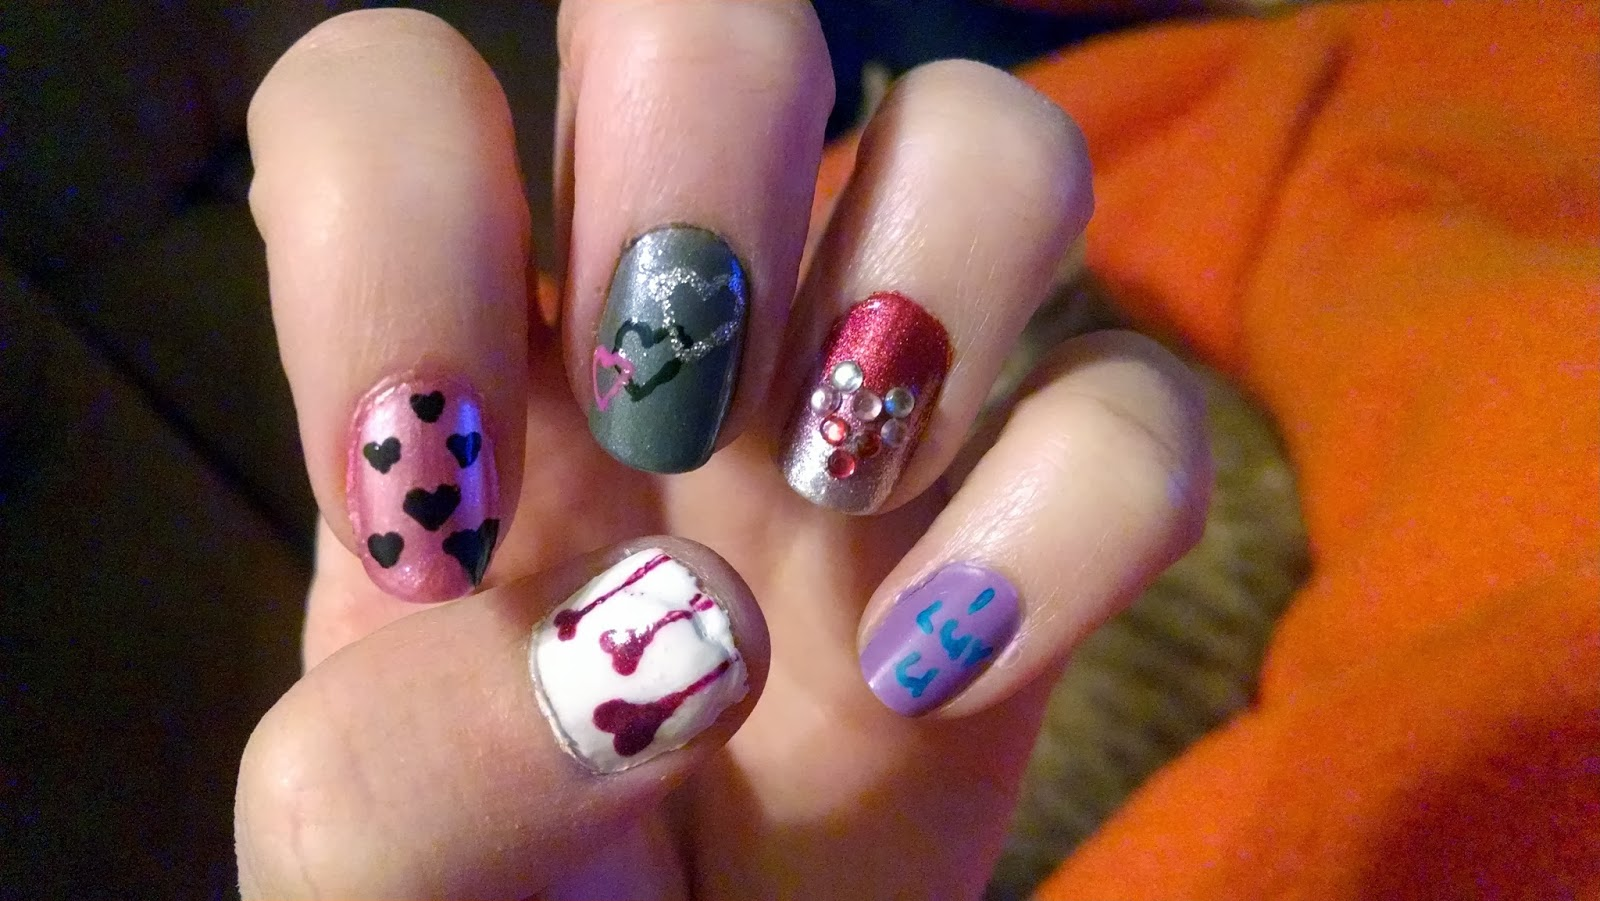 The Nail Diaries: Valentine's 2013 Medley Nail Design